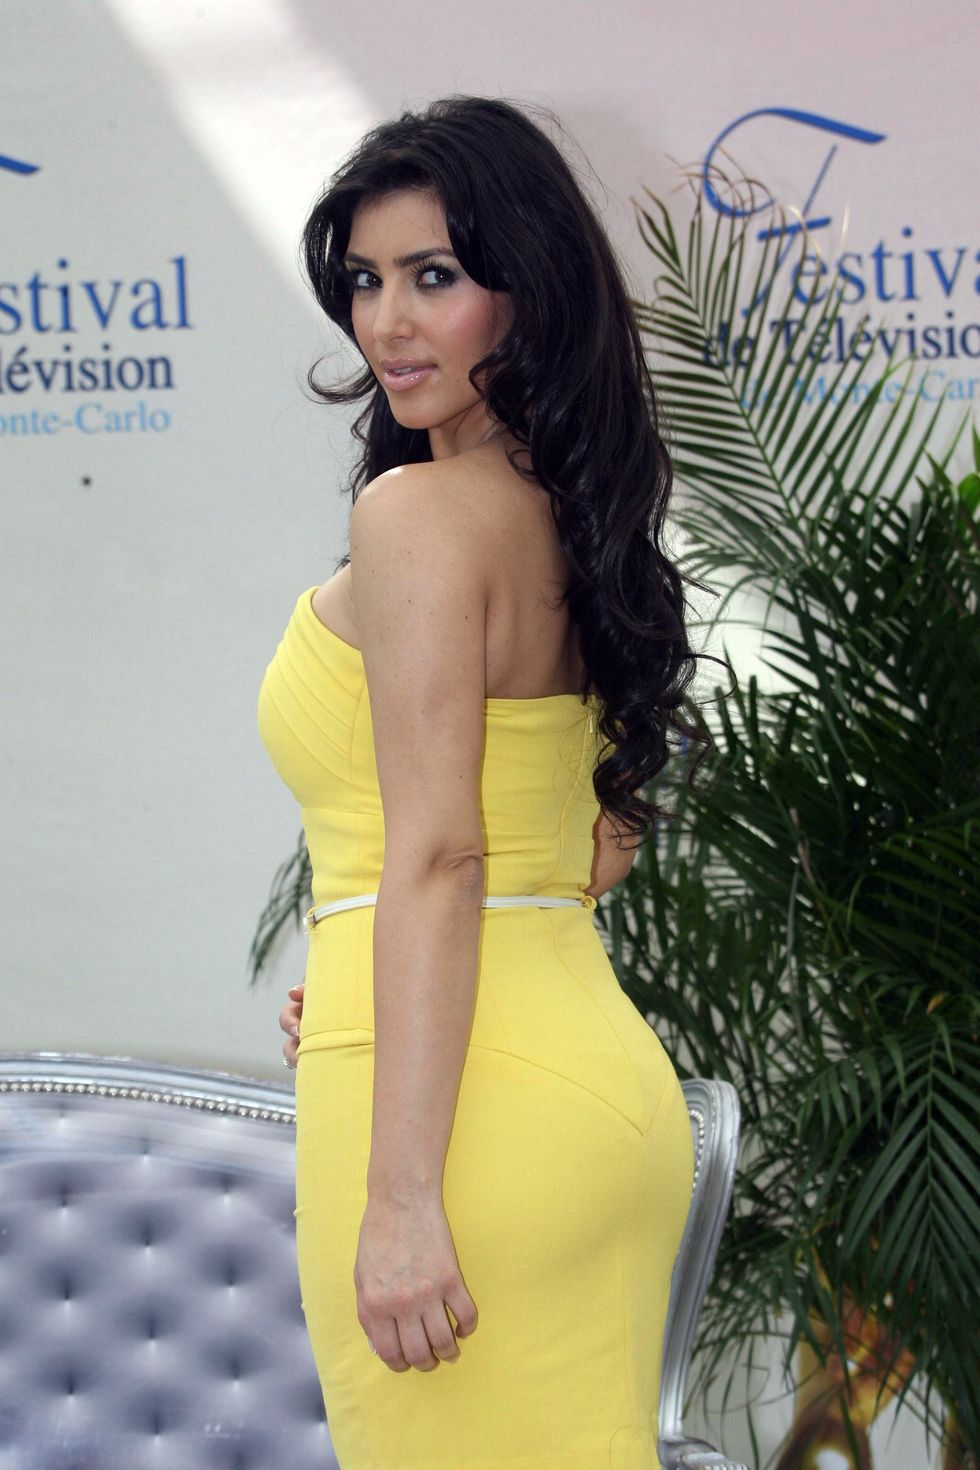 kim-kardashian-keeping-up-with-the-kardashians-photocall-in-monte-carlo-02